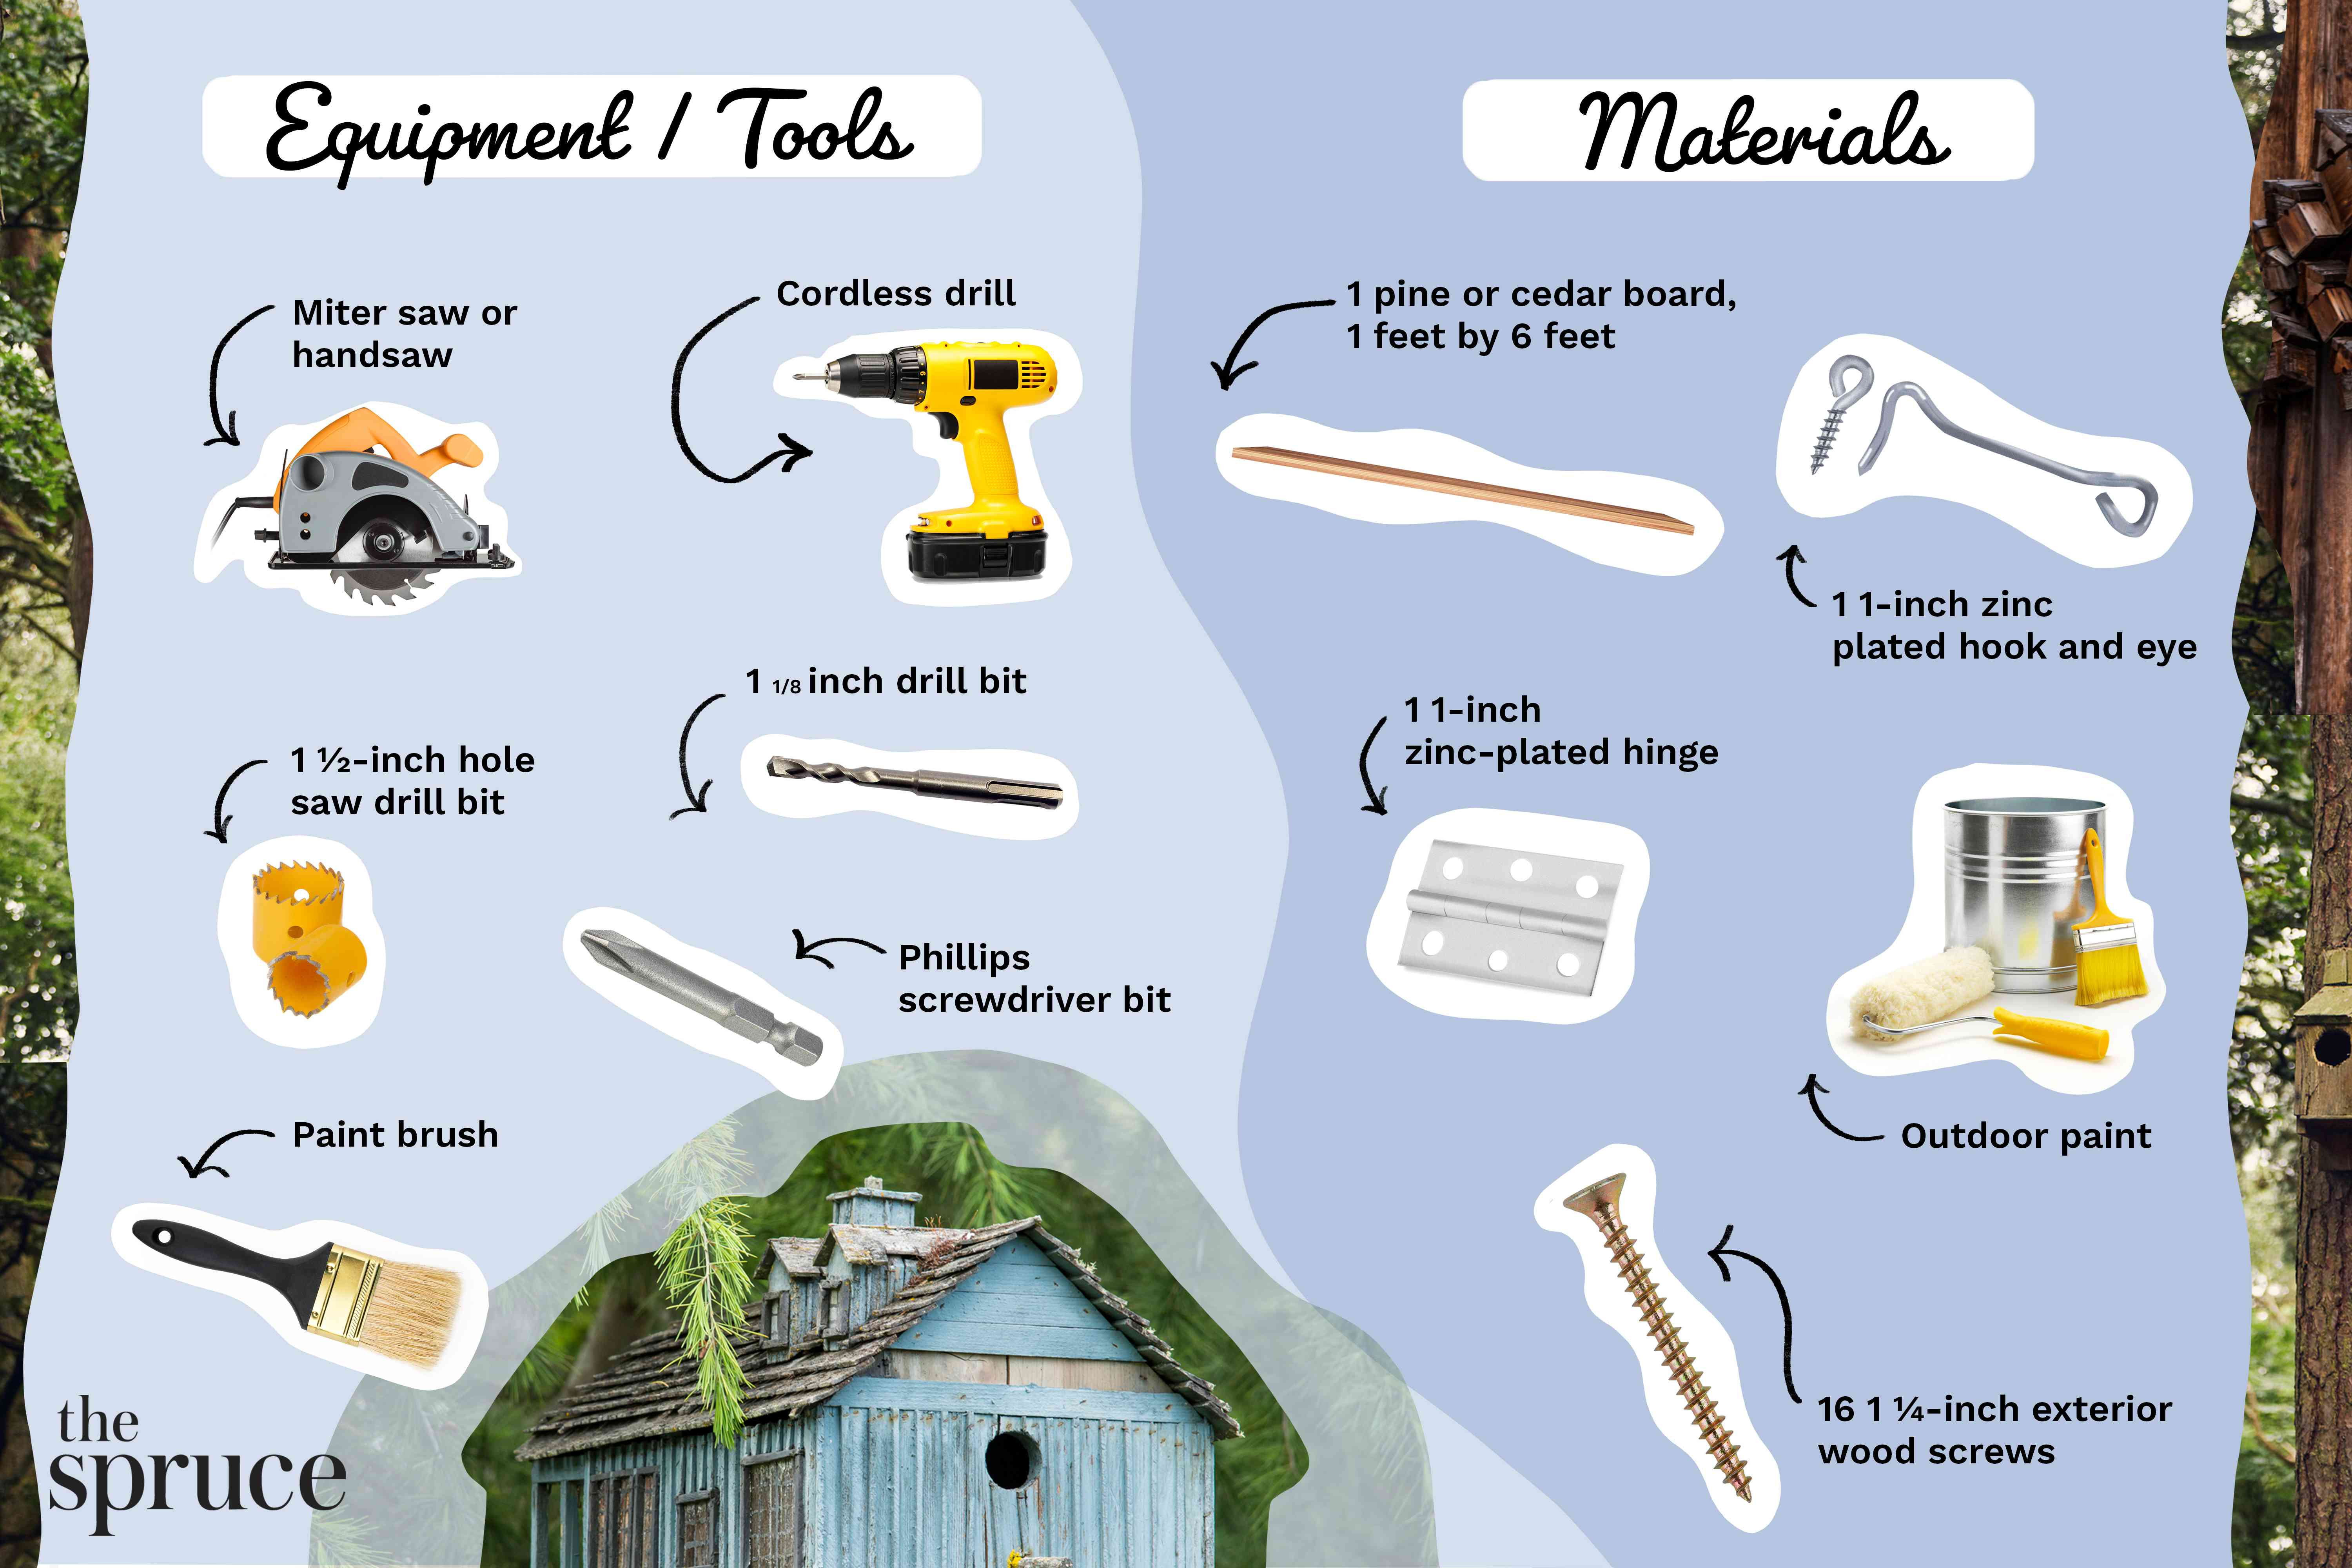 Materials and tools illustration to build a birdhouse